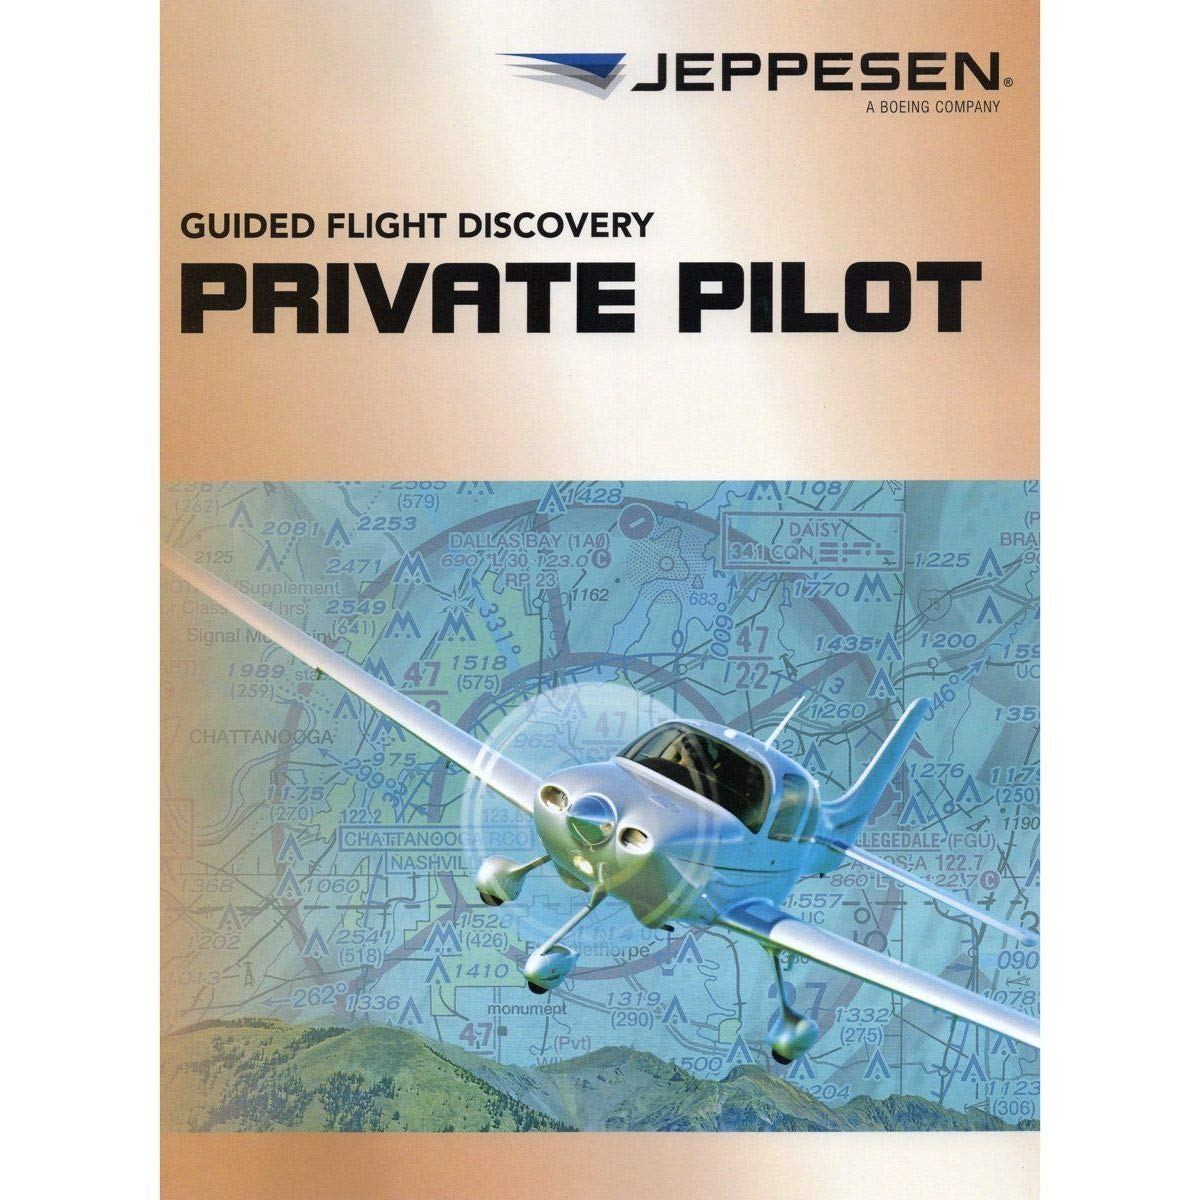 Private Pilot Manuals and Handbooks Needed For the Private Pilot License